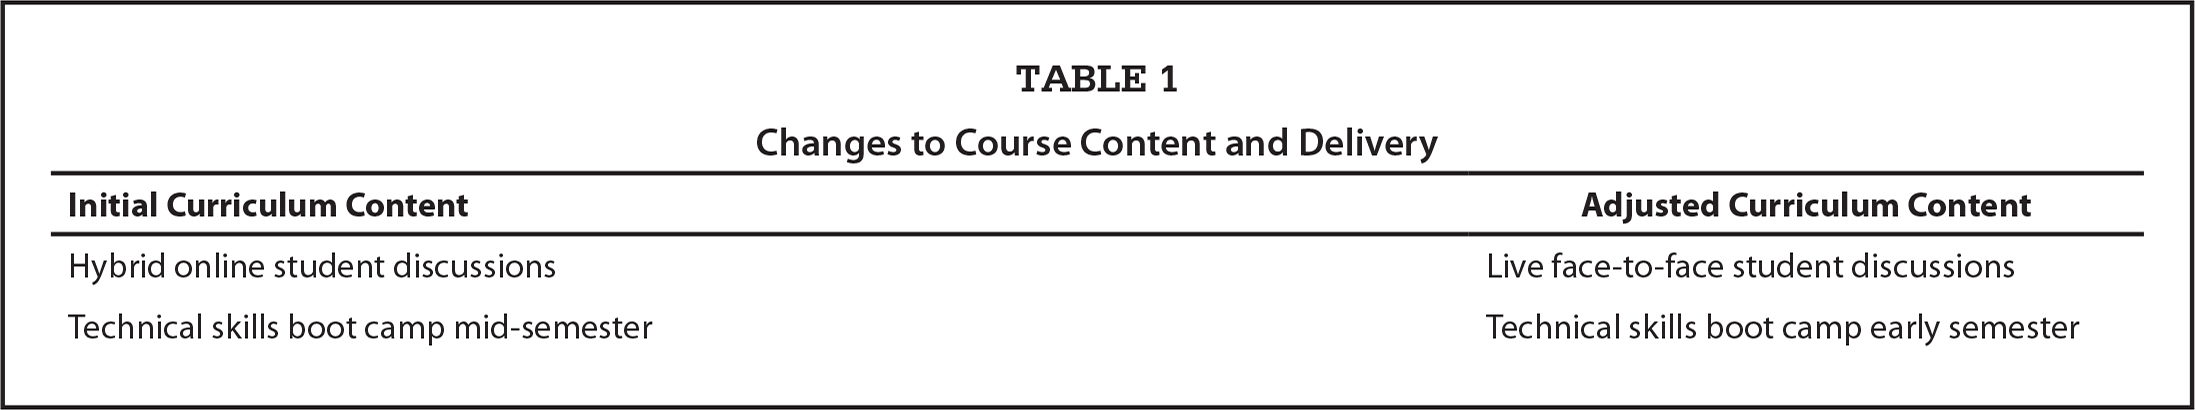 Changes to Course Content and Delivery